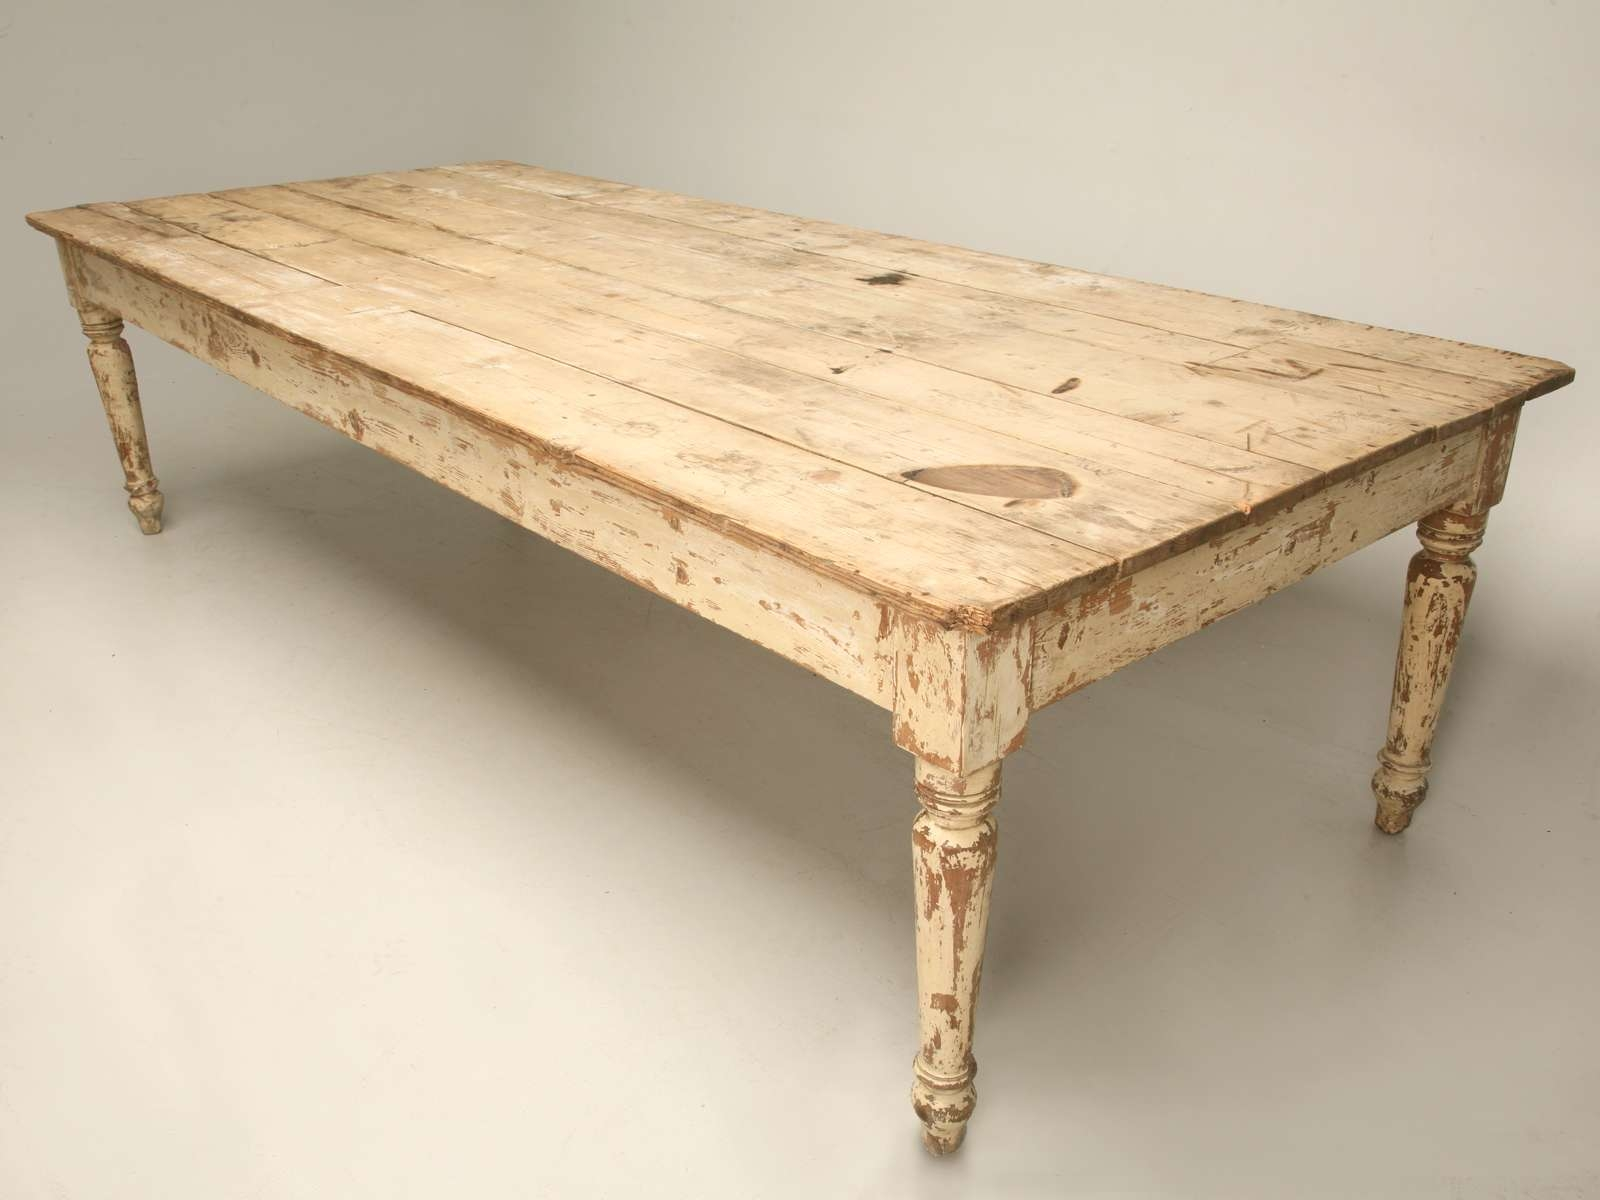 Rustic Coffee Table And End Tables – Coffee Tables Regarding 2017 Elegant Rustic Coffee Tables (View 9 of 20)